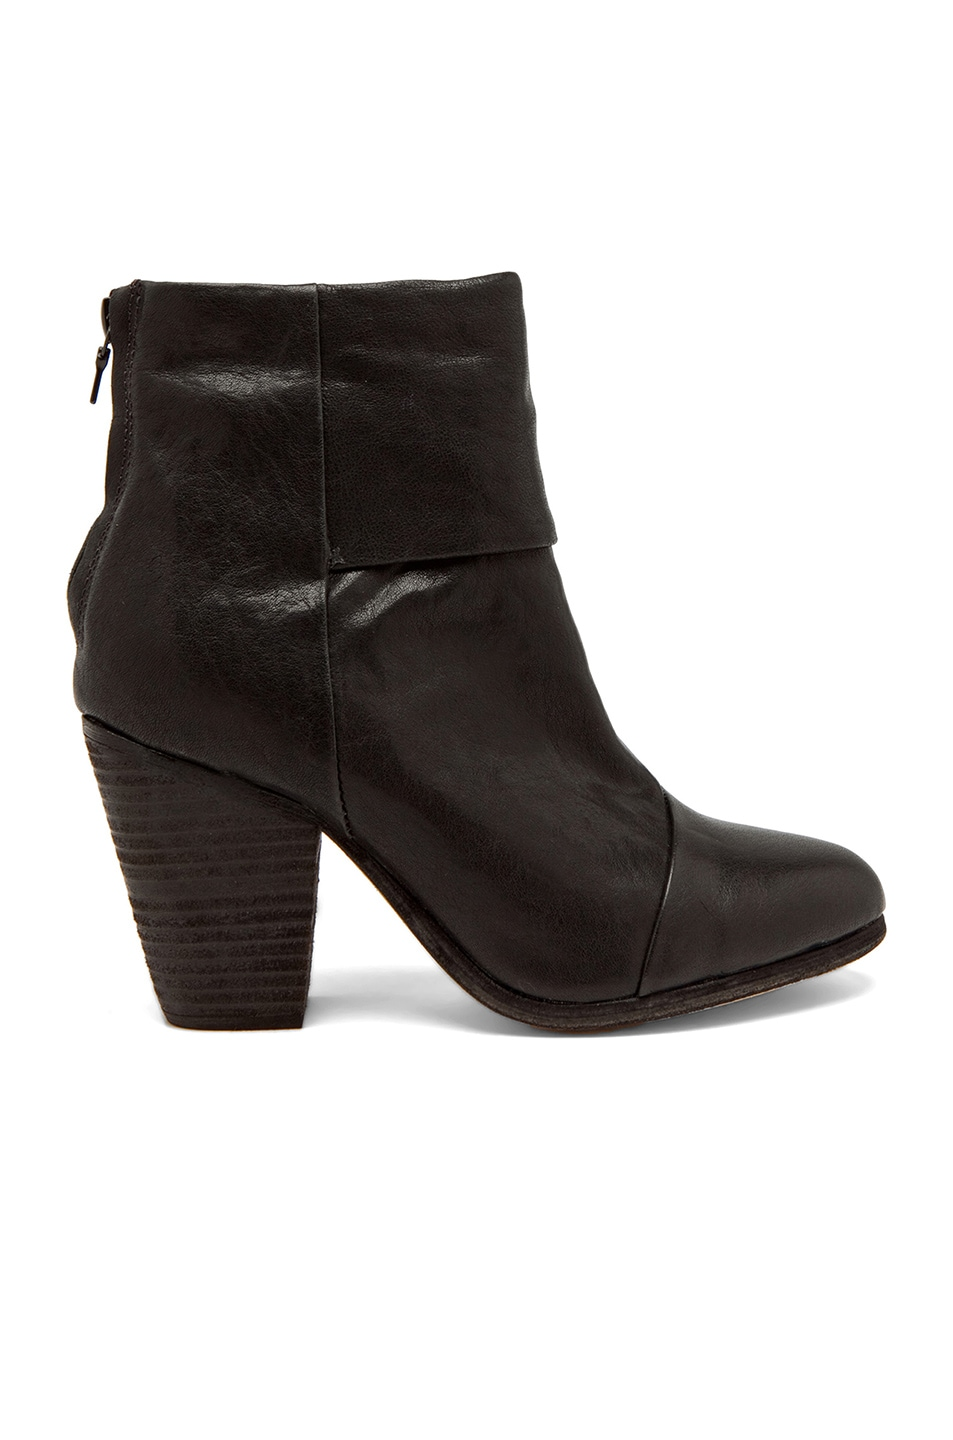 Image 1 of Rag & Bone Classic Newbury Leather Boots in Black